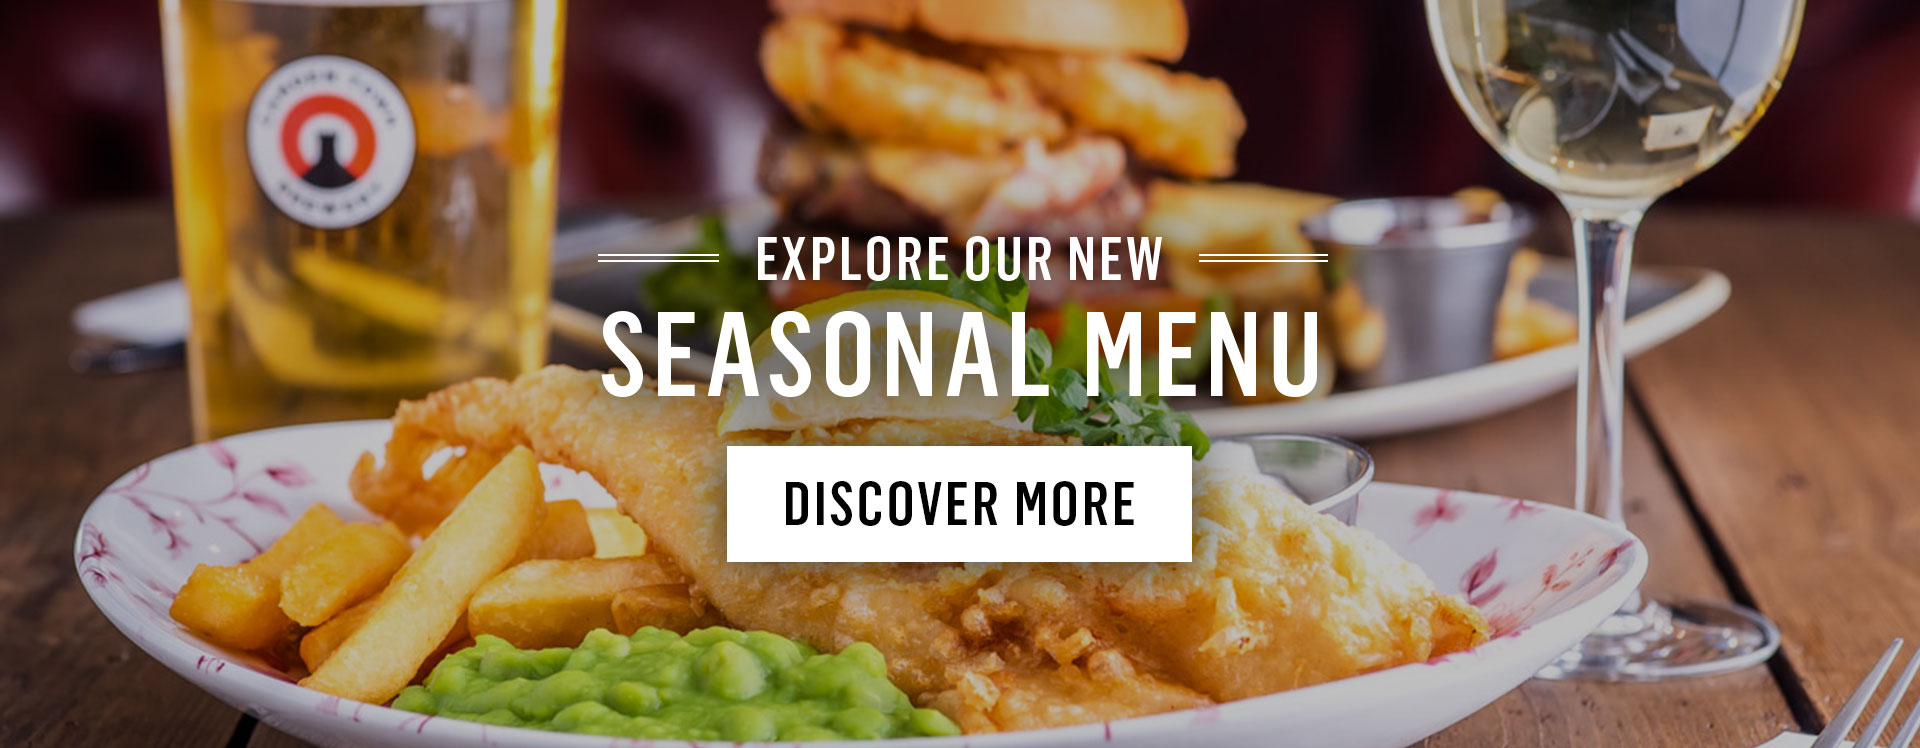 New Menu at The Eagle and Child